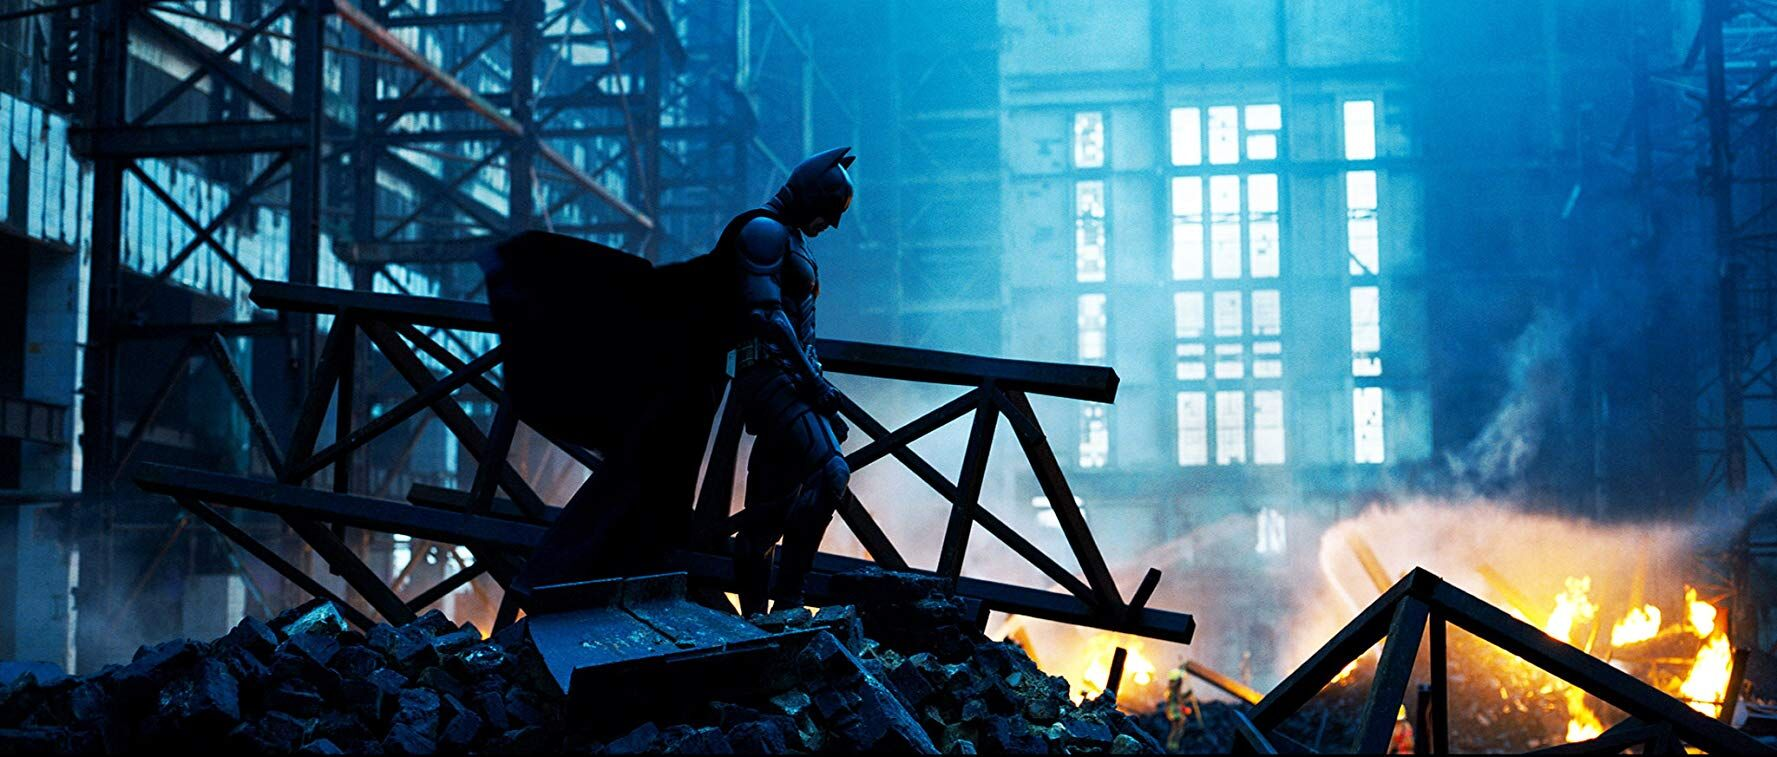 Rumor: The plot for The Batman has been exposed